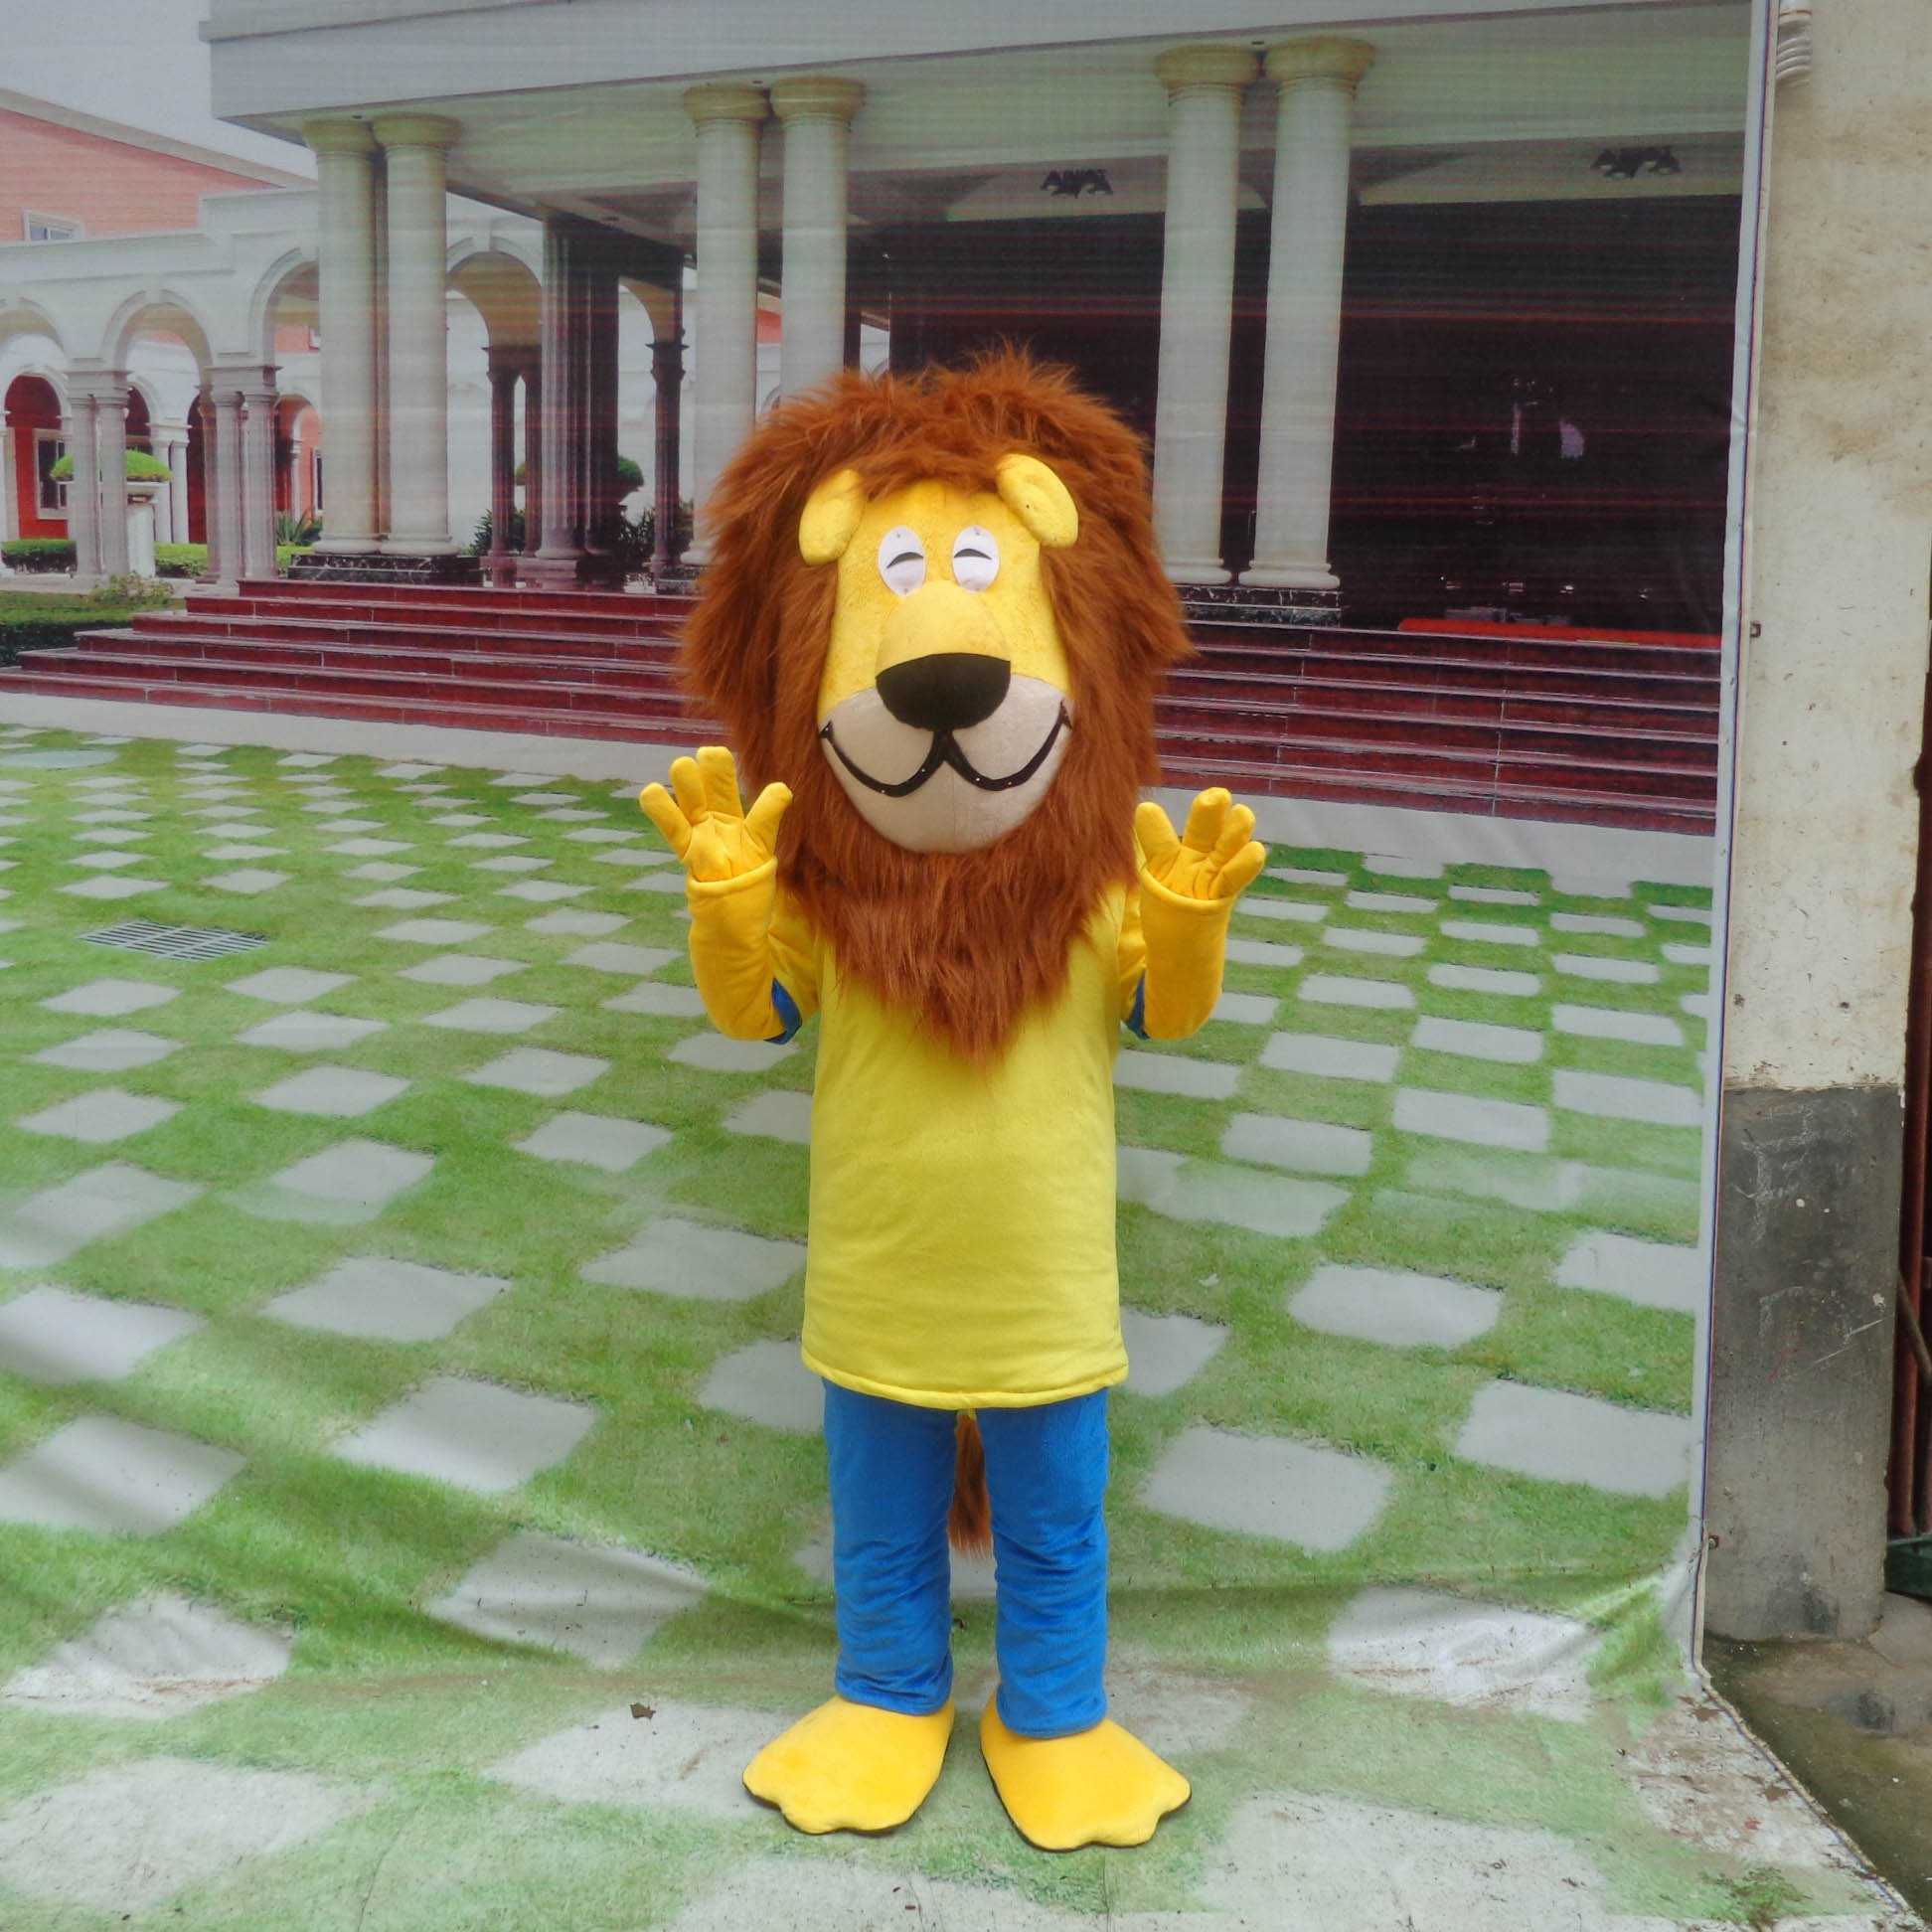 Cartoon Doll Clothing Cartoon Walking Doll Clothing Doll Clothing Doll Clothing Cartoon Show Props Lion King Mascot Costume